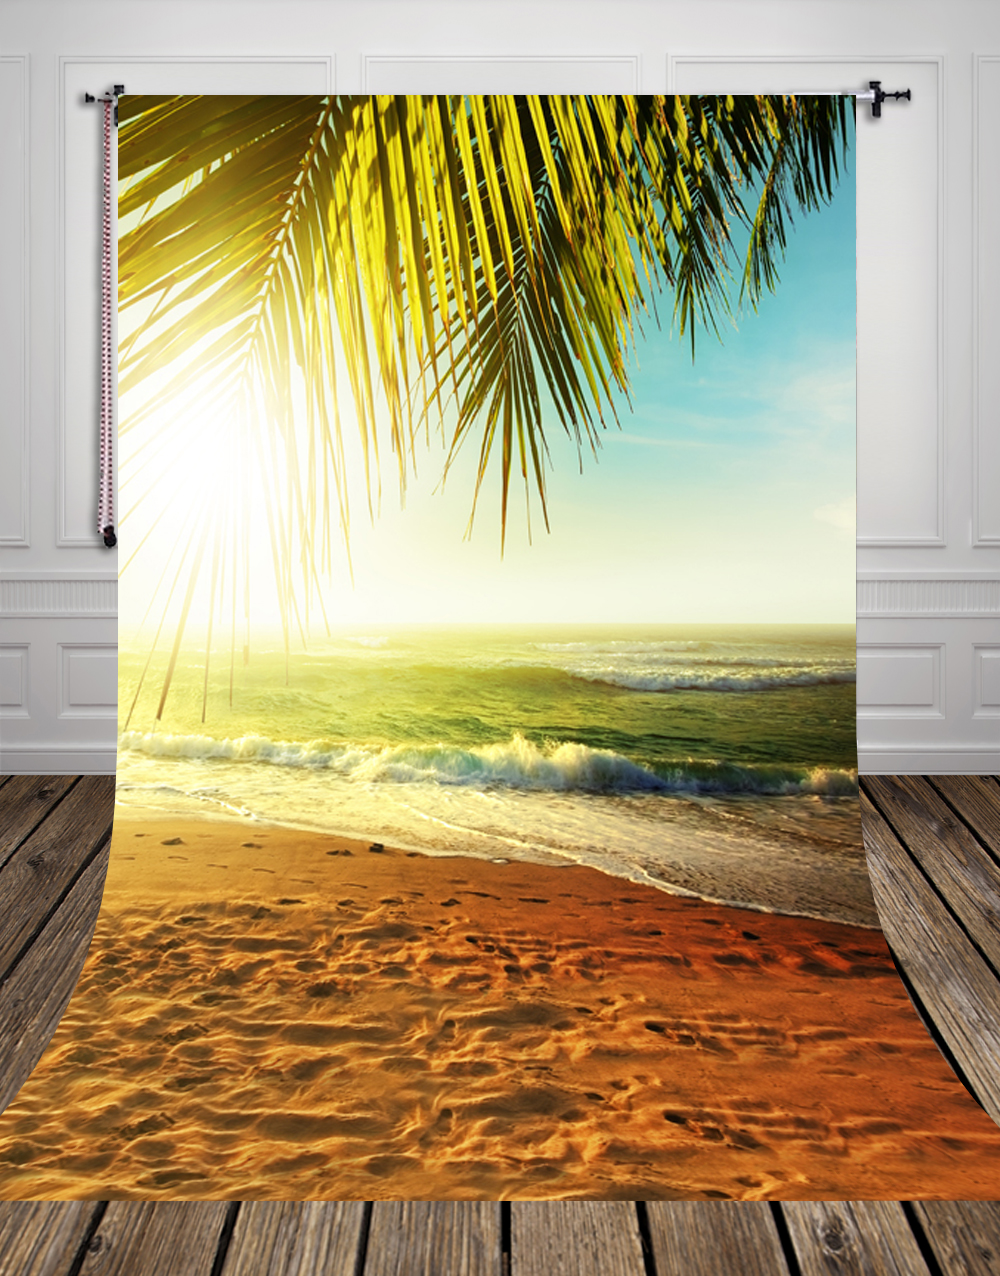 US $9 45 37% OFF|Photography Background seaside beach Hawaii Digital  Printing Newborn Backdrops For Photo Studio D 9274-in Background from  Consumer